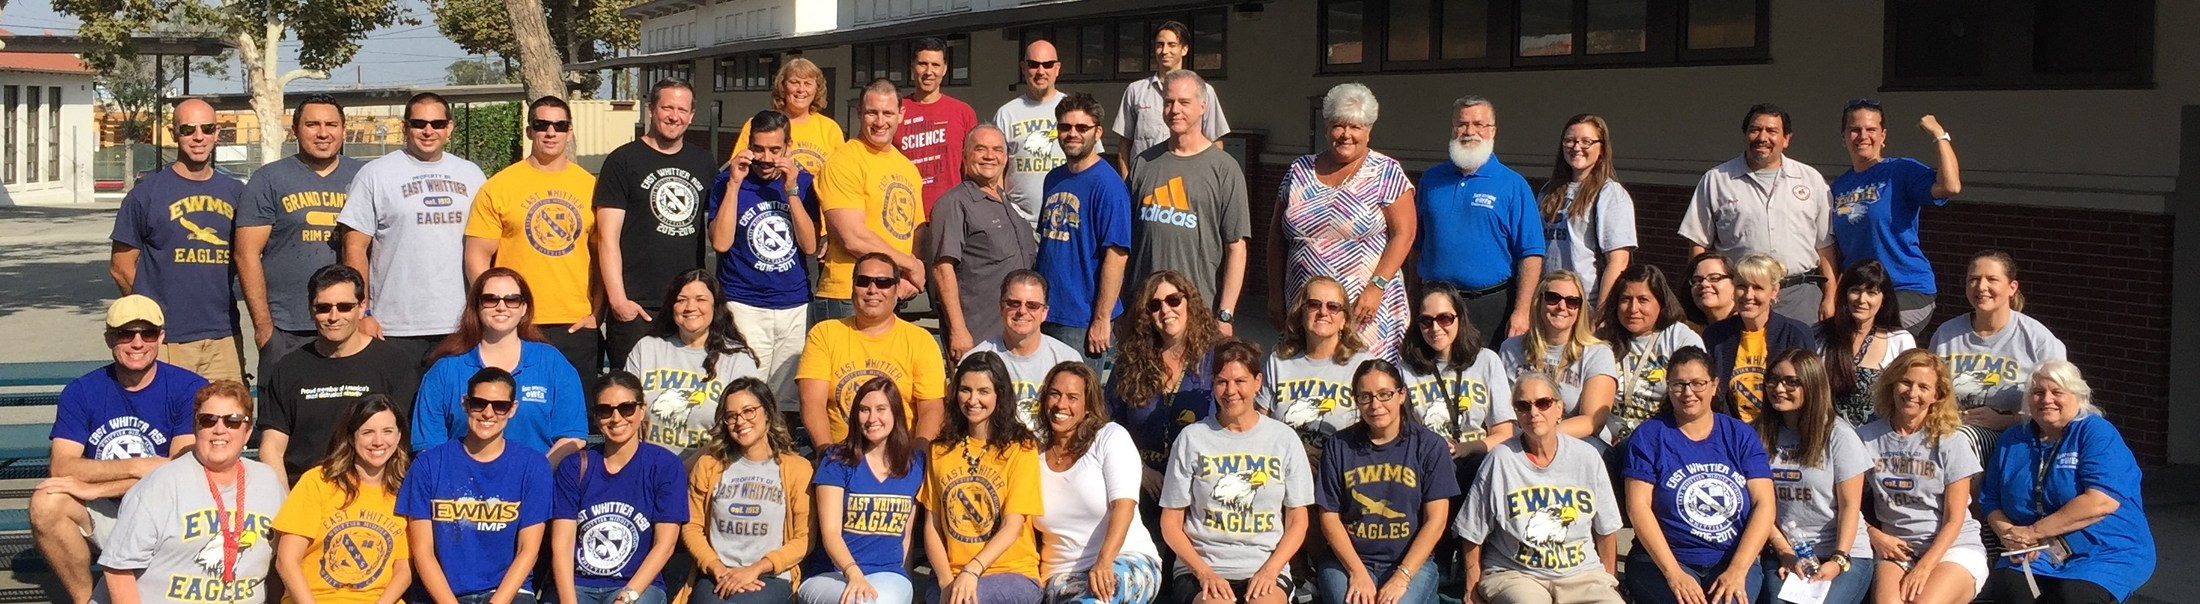 Group photo of staff wearing East Whittier Middle School tshirts